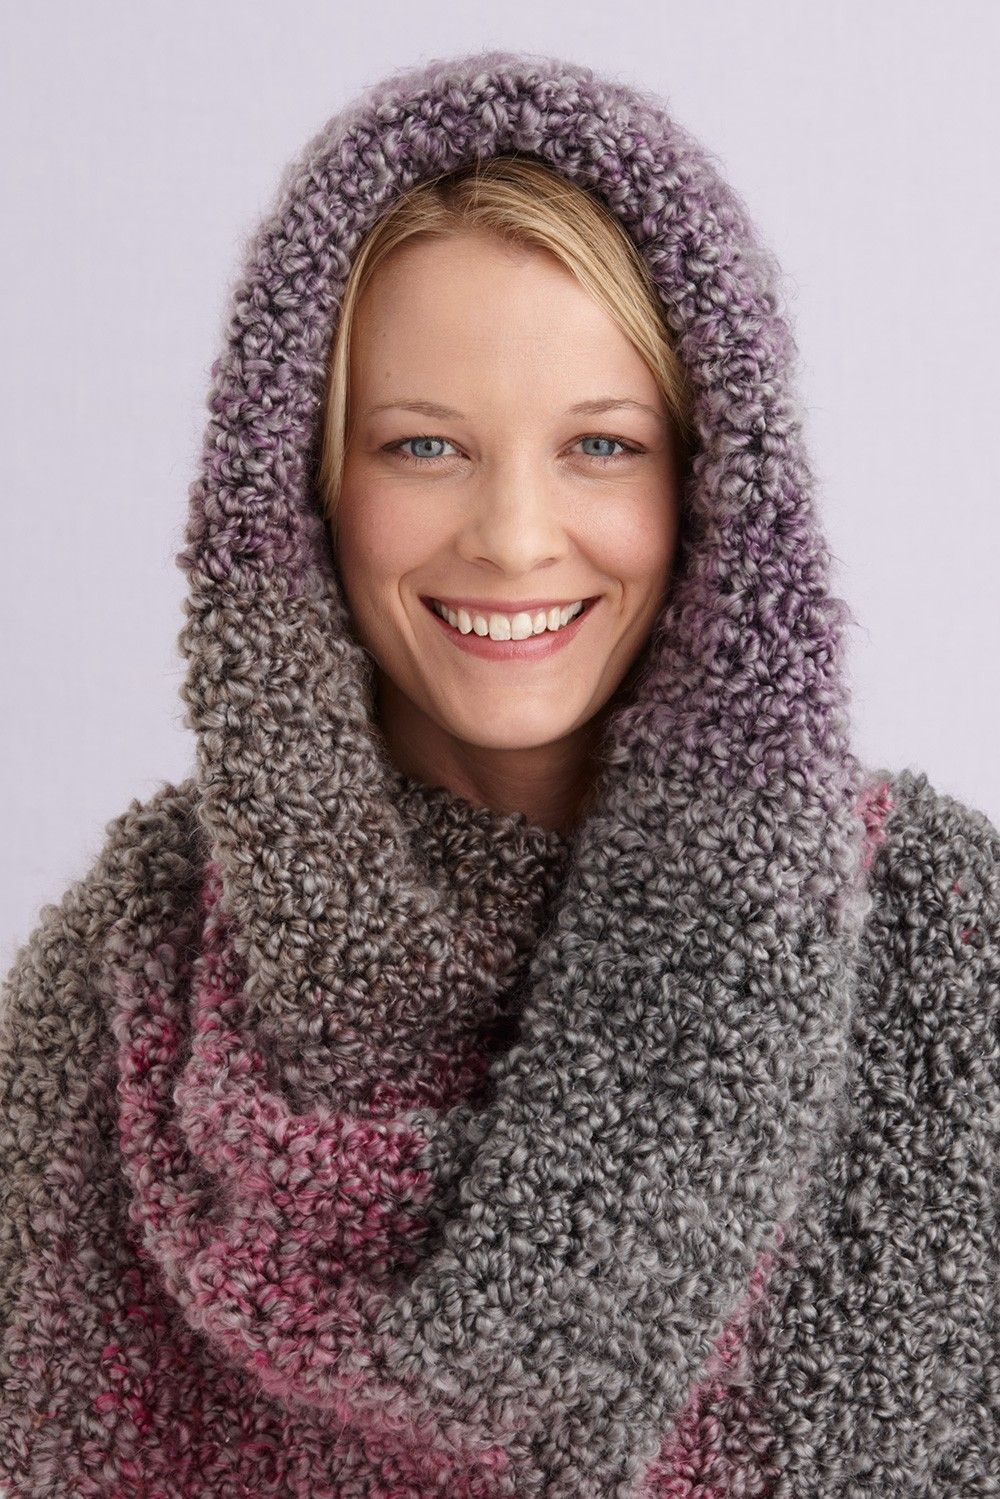 Crochet Hooded Scarf Pattern Best Design